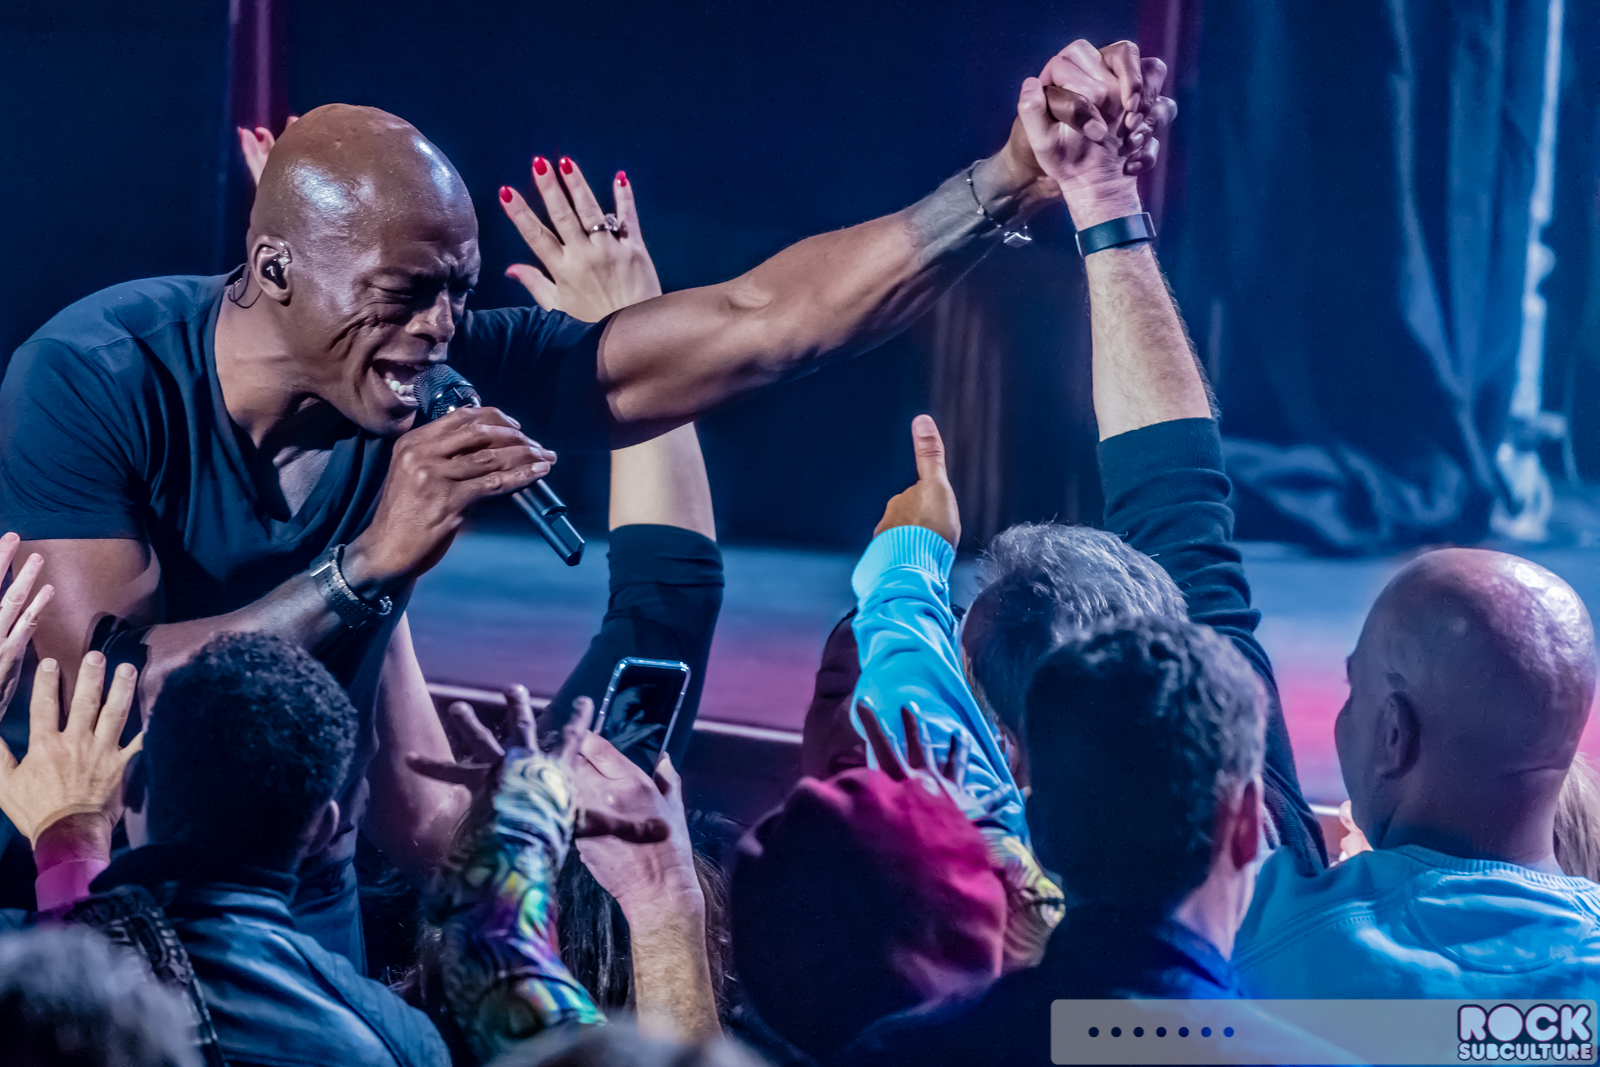 Seal at The Fox Theater   Oakland, California   2/5/2016 (Concert